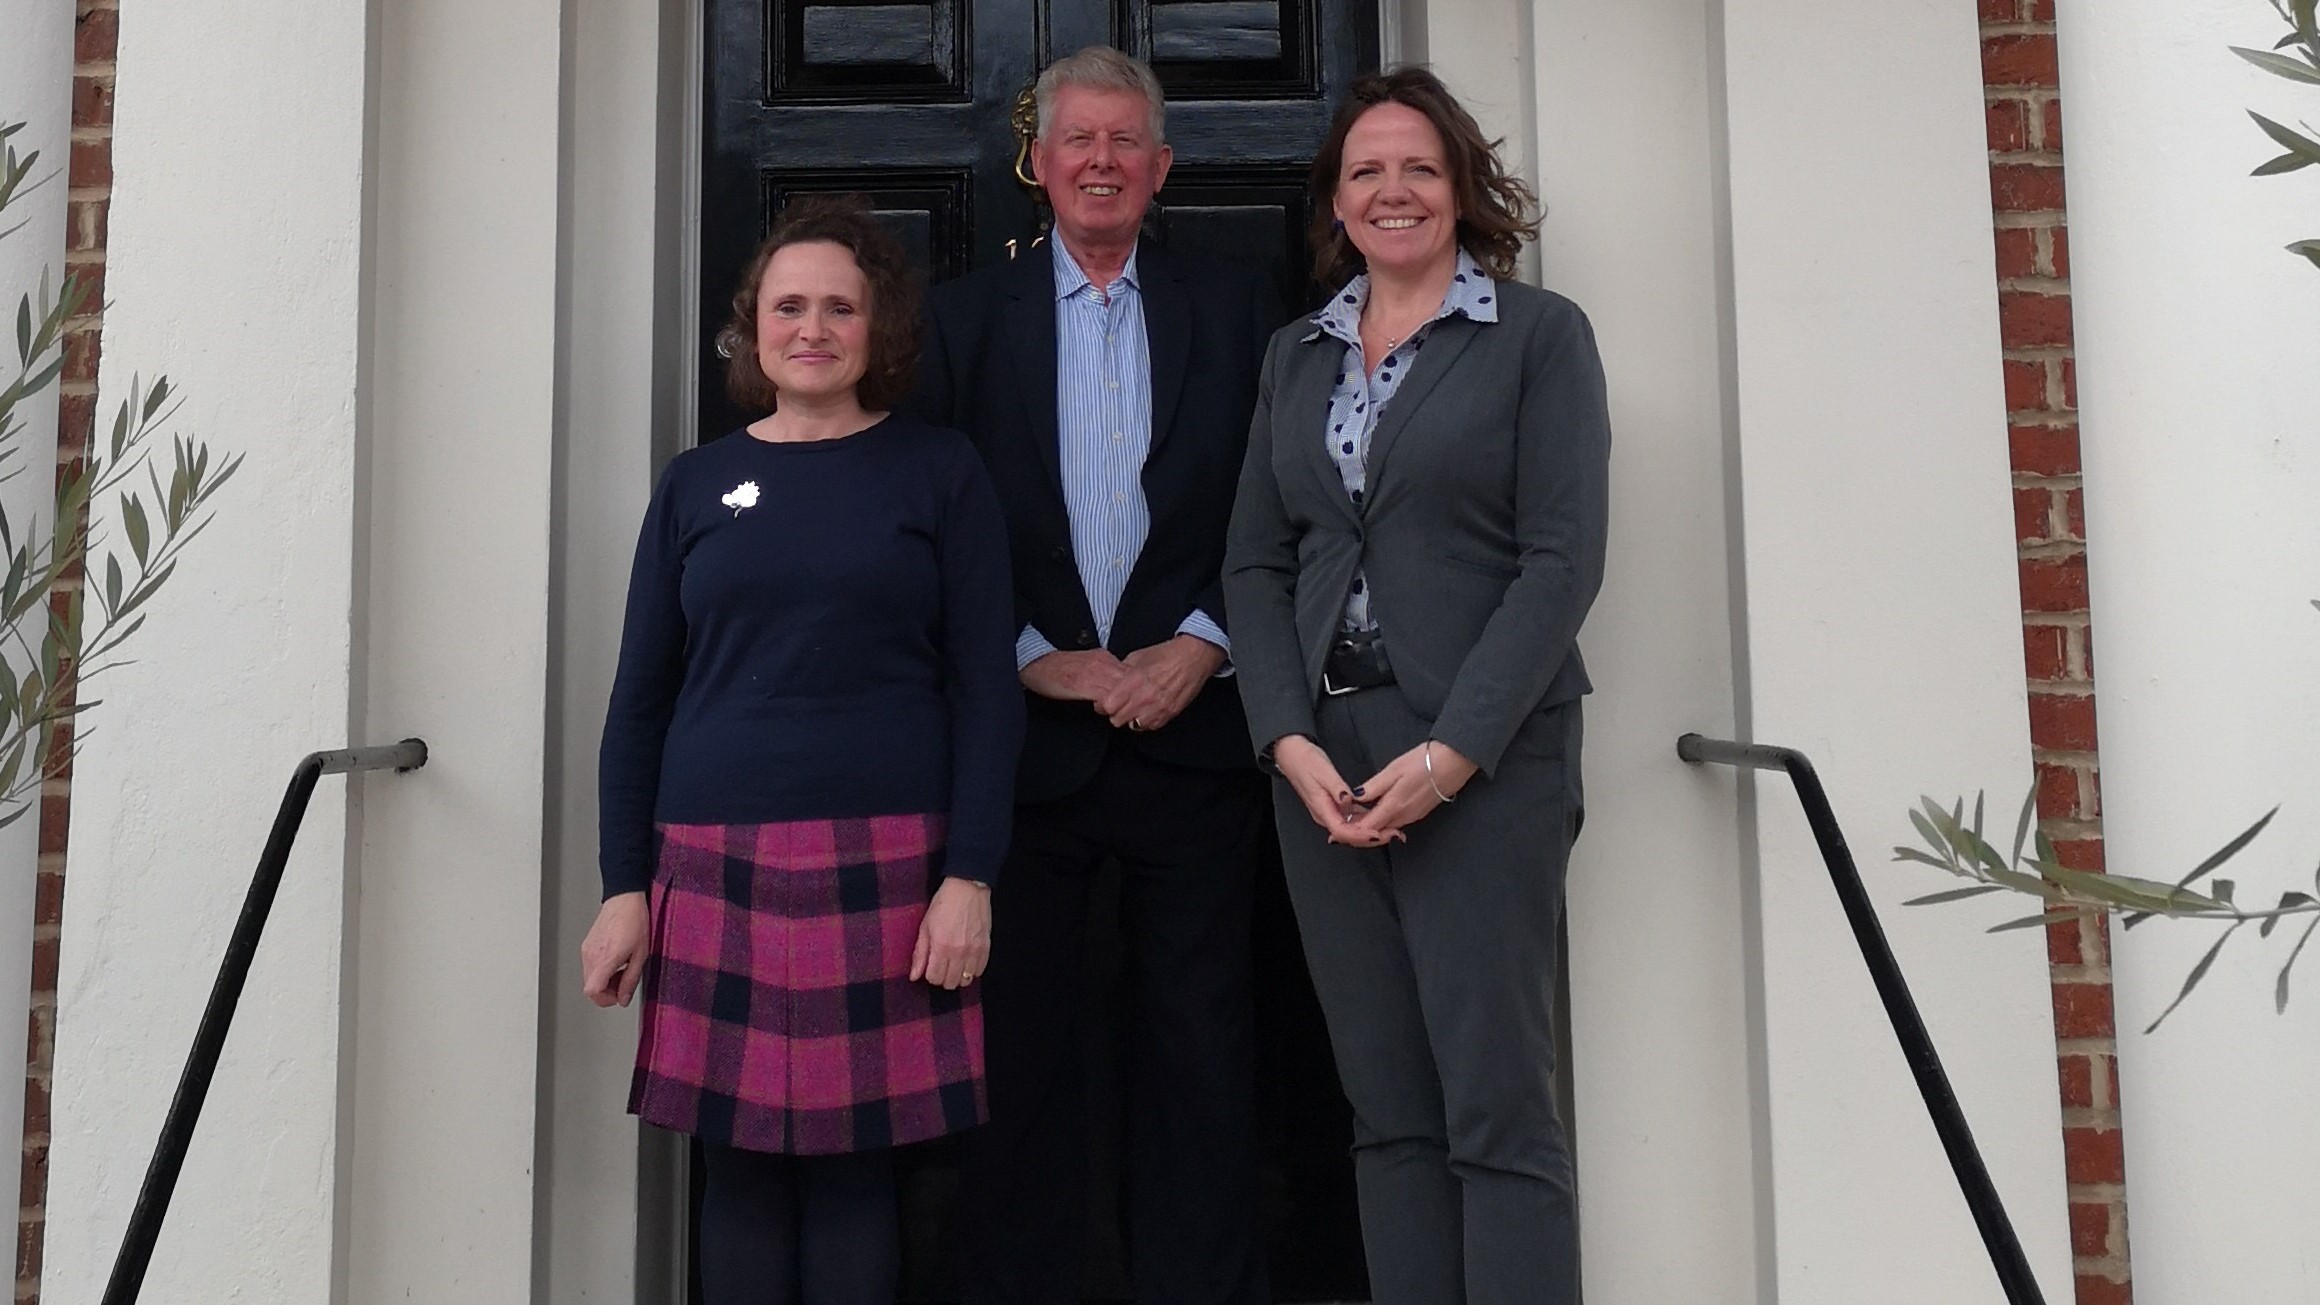 Penny Endersby with David Warrilow and Liz Bentley at the Society